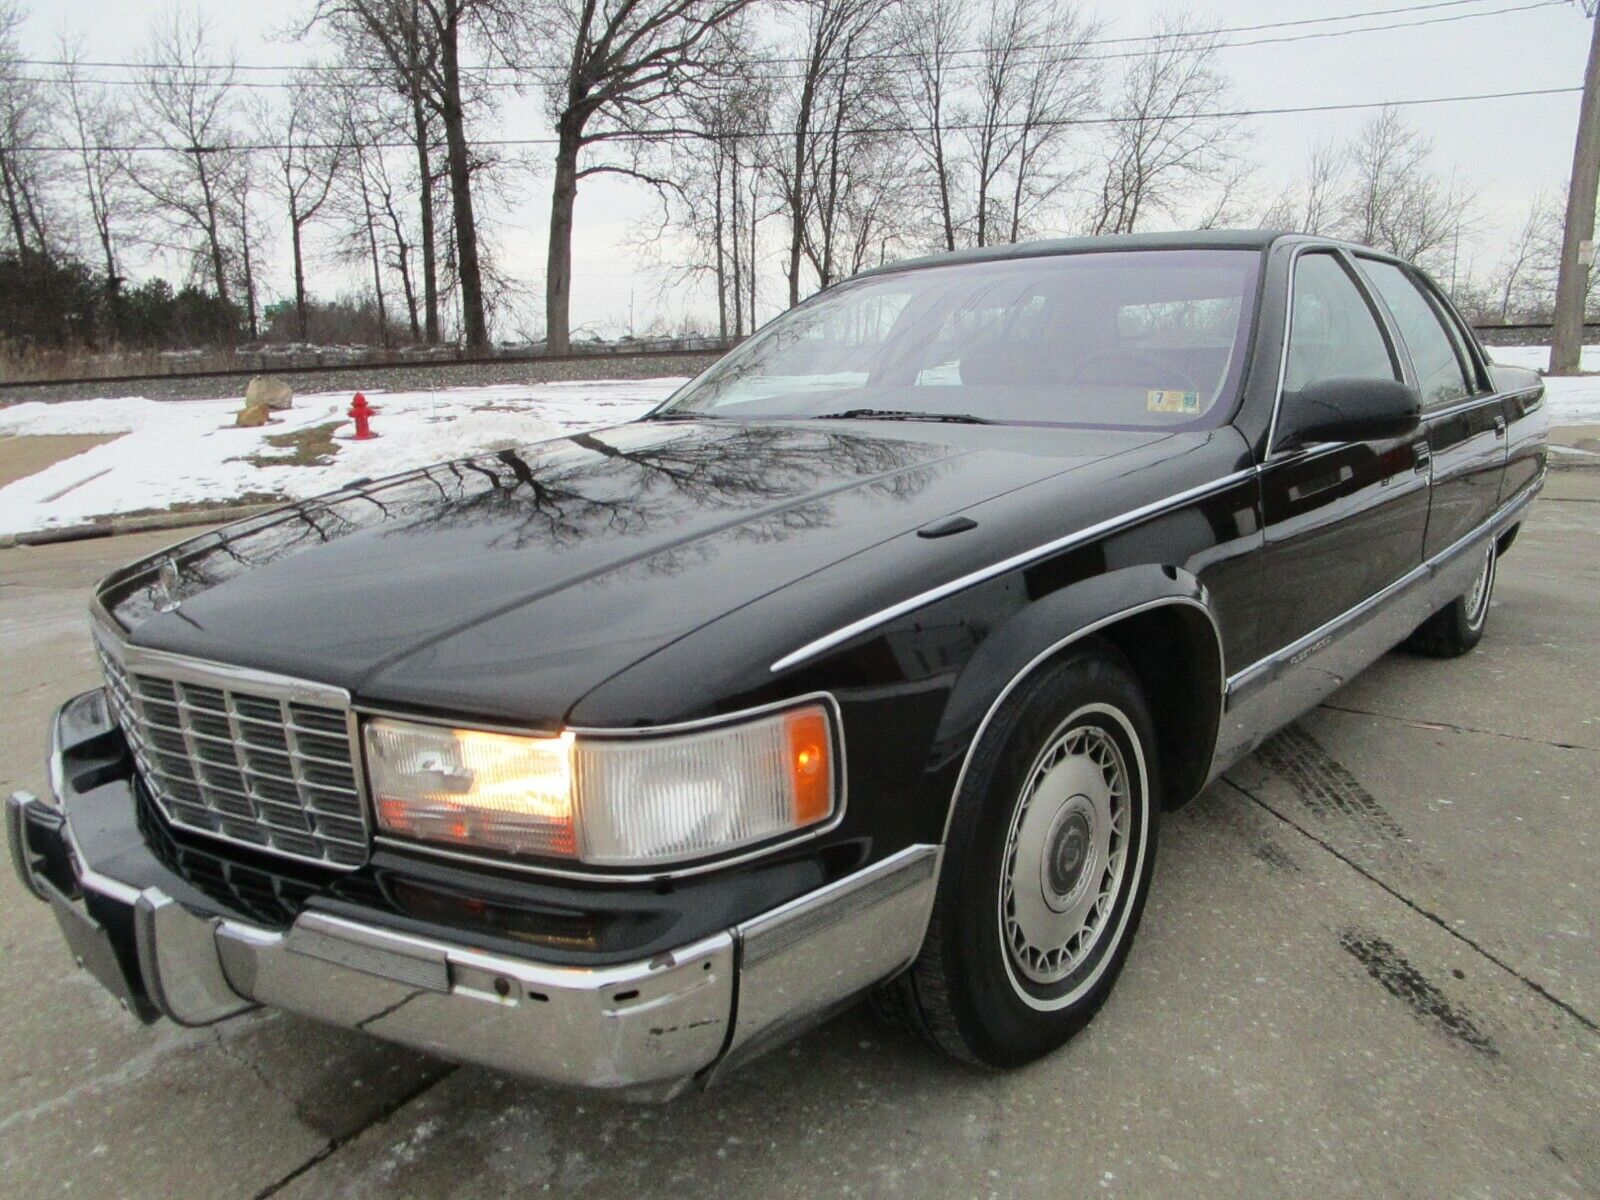 51996 Cadillac Fleetwood Brougham - No Rust - Loaded Up - 100K - Drives Like New